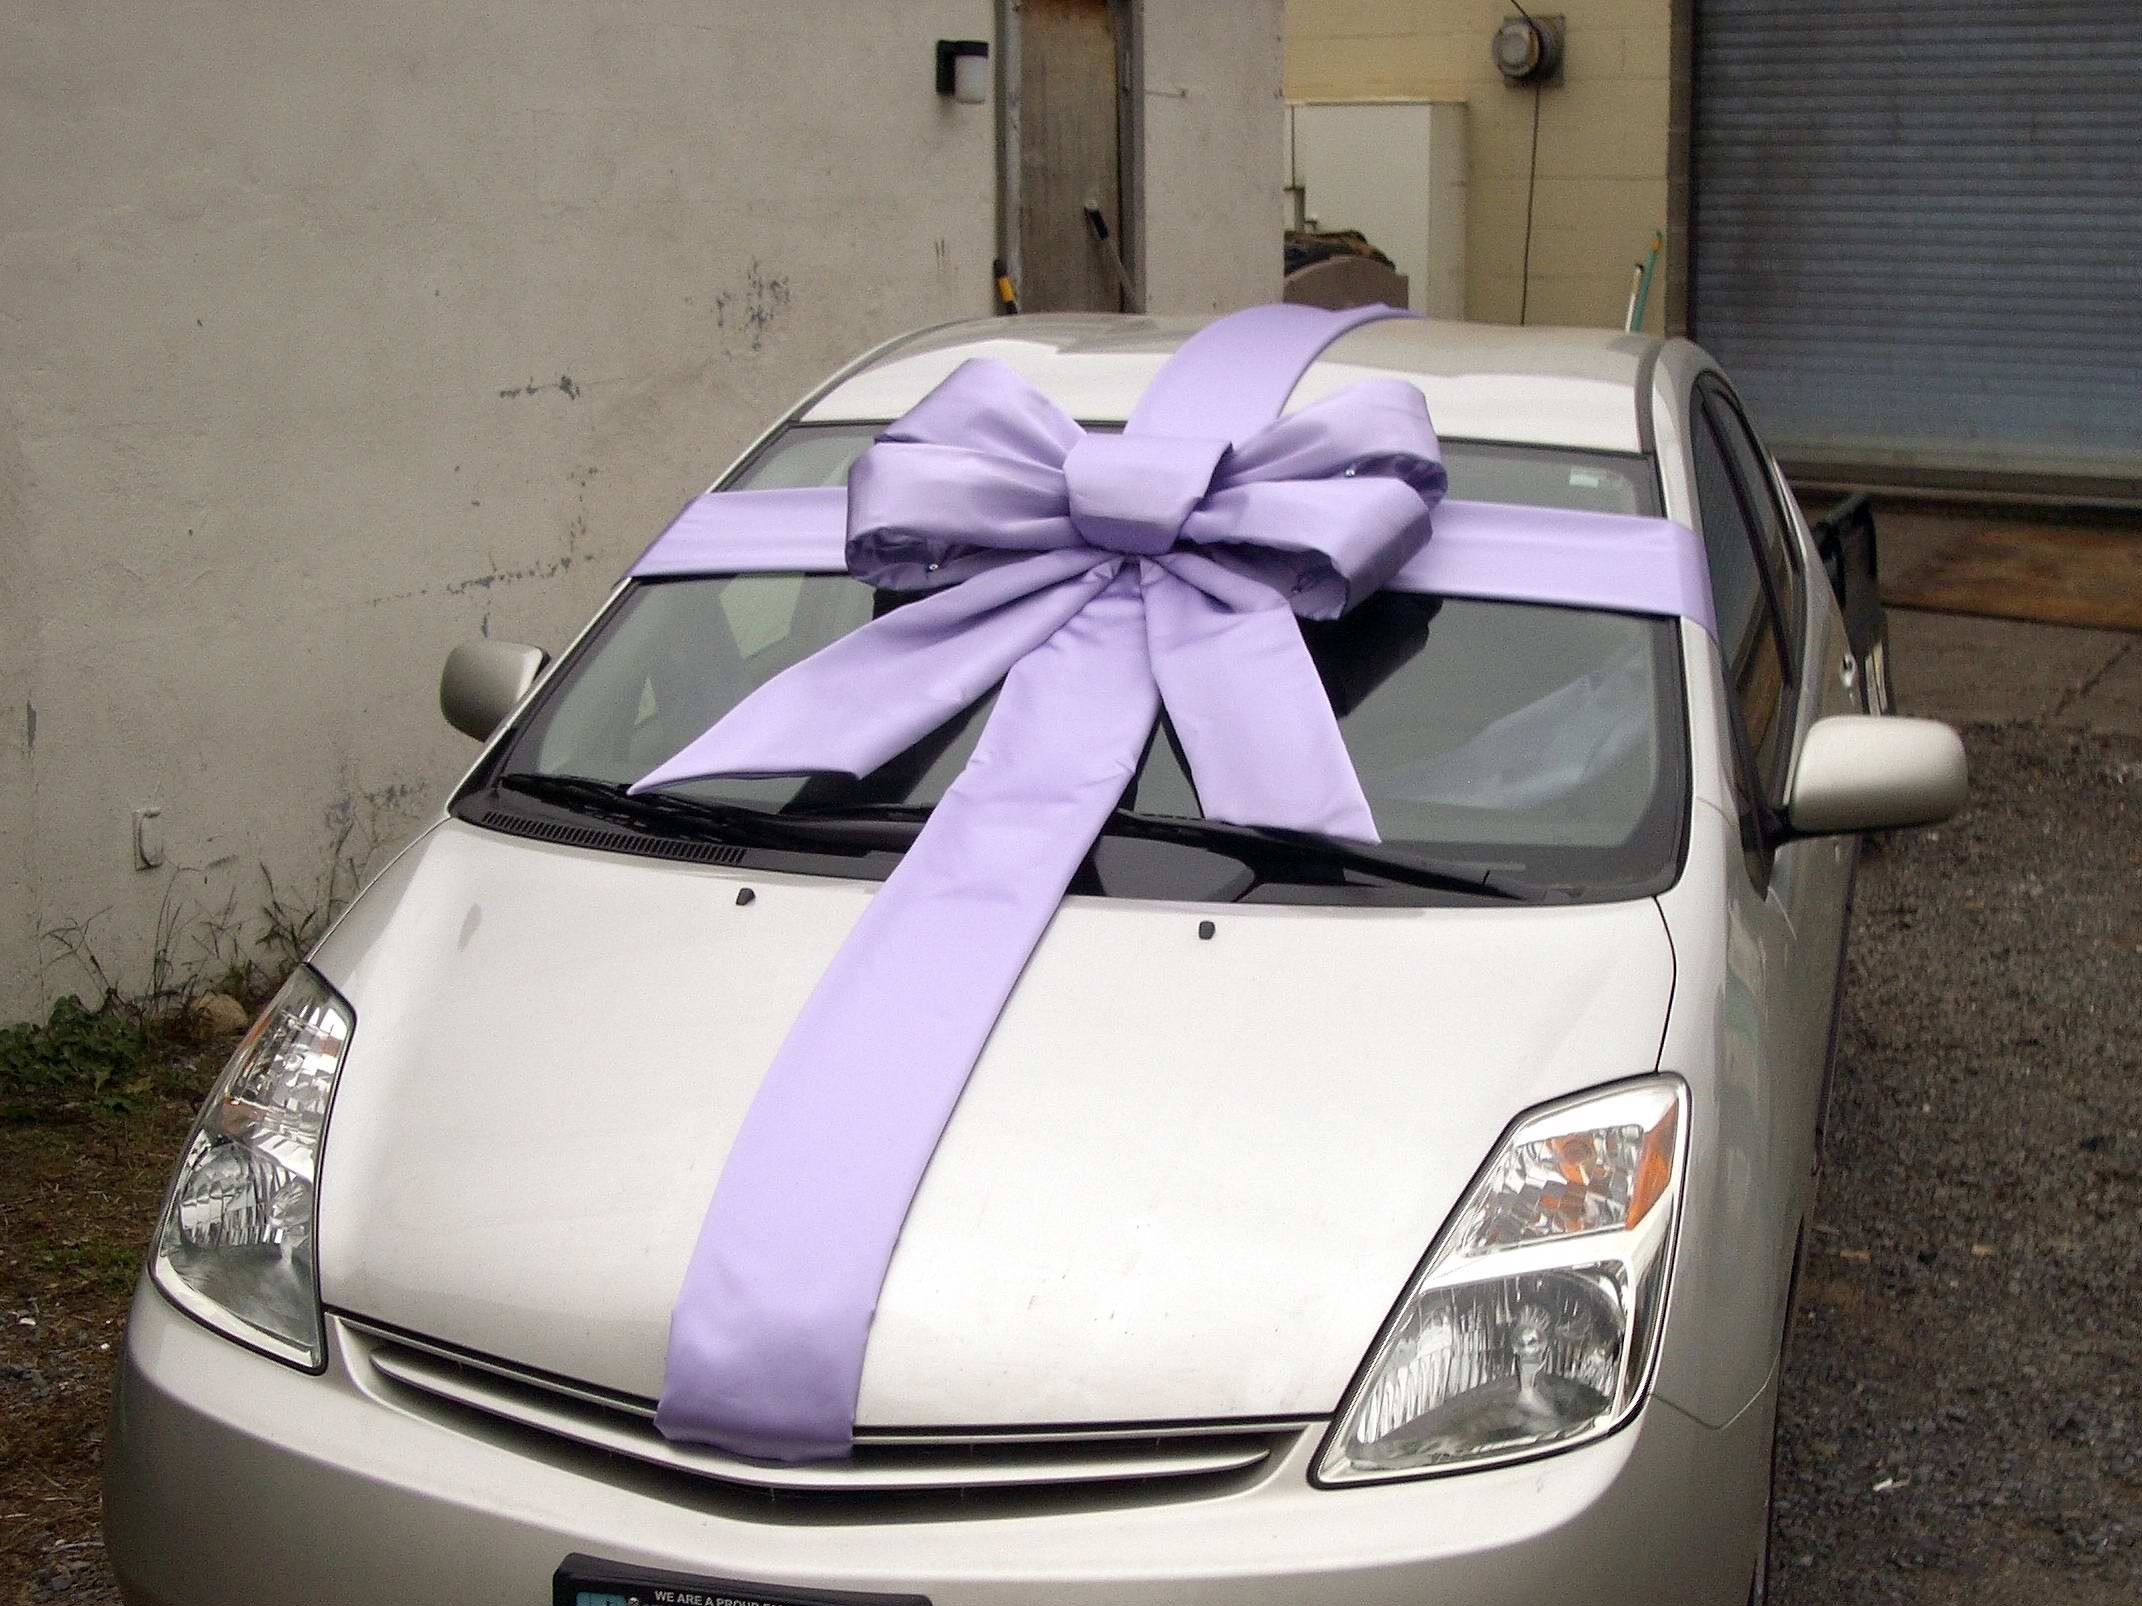 How to make a gift for the car